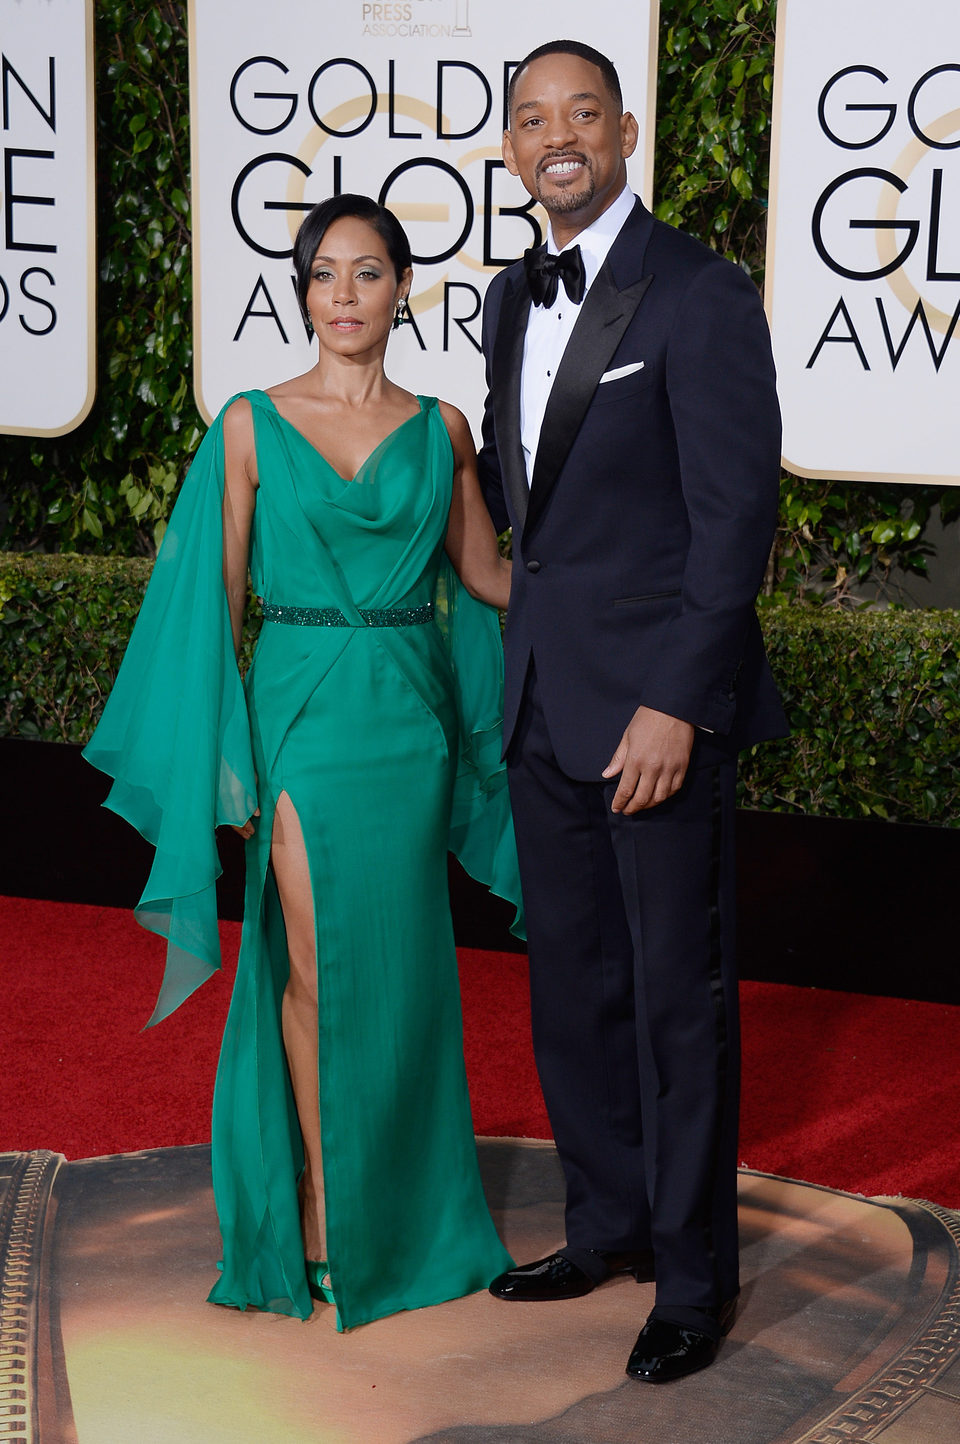 Will Smith y Jada Pinkett Smith en la alfombra roja de los Globos de Oro 2016